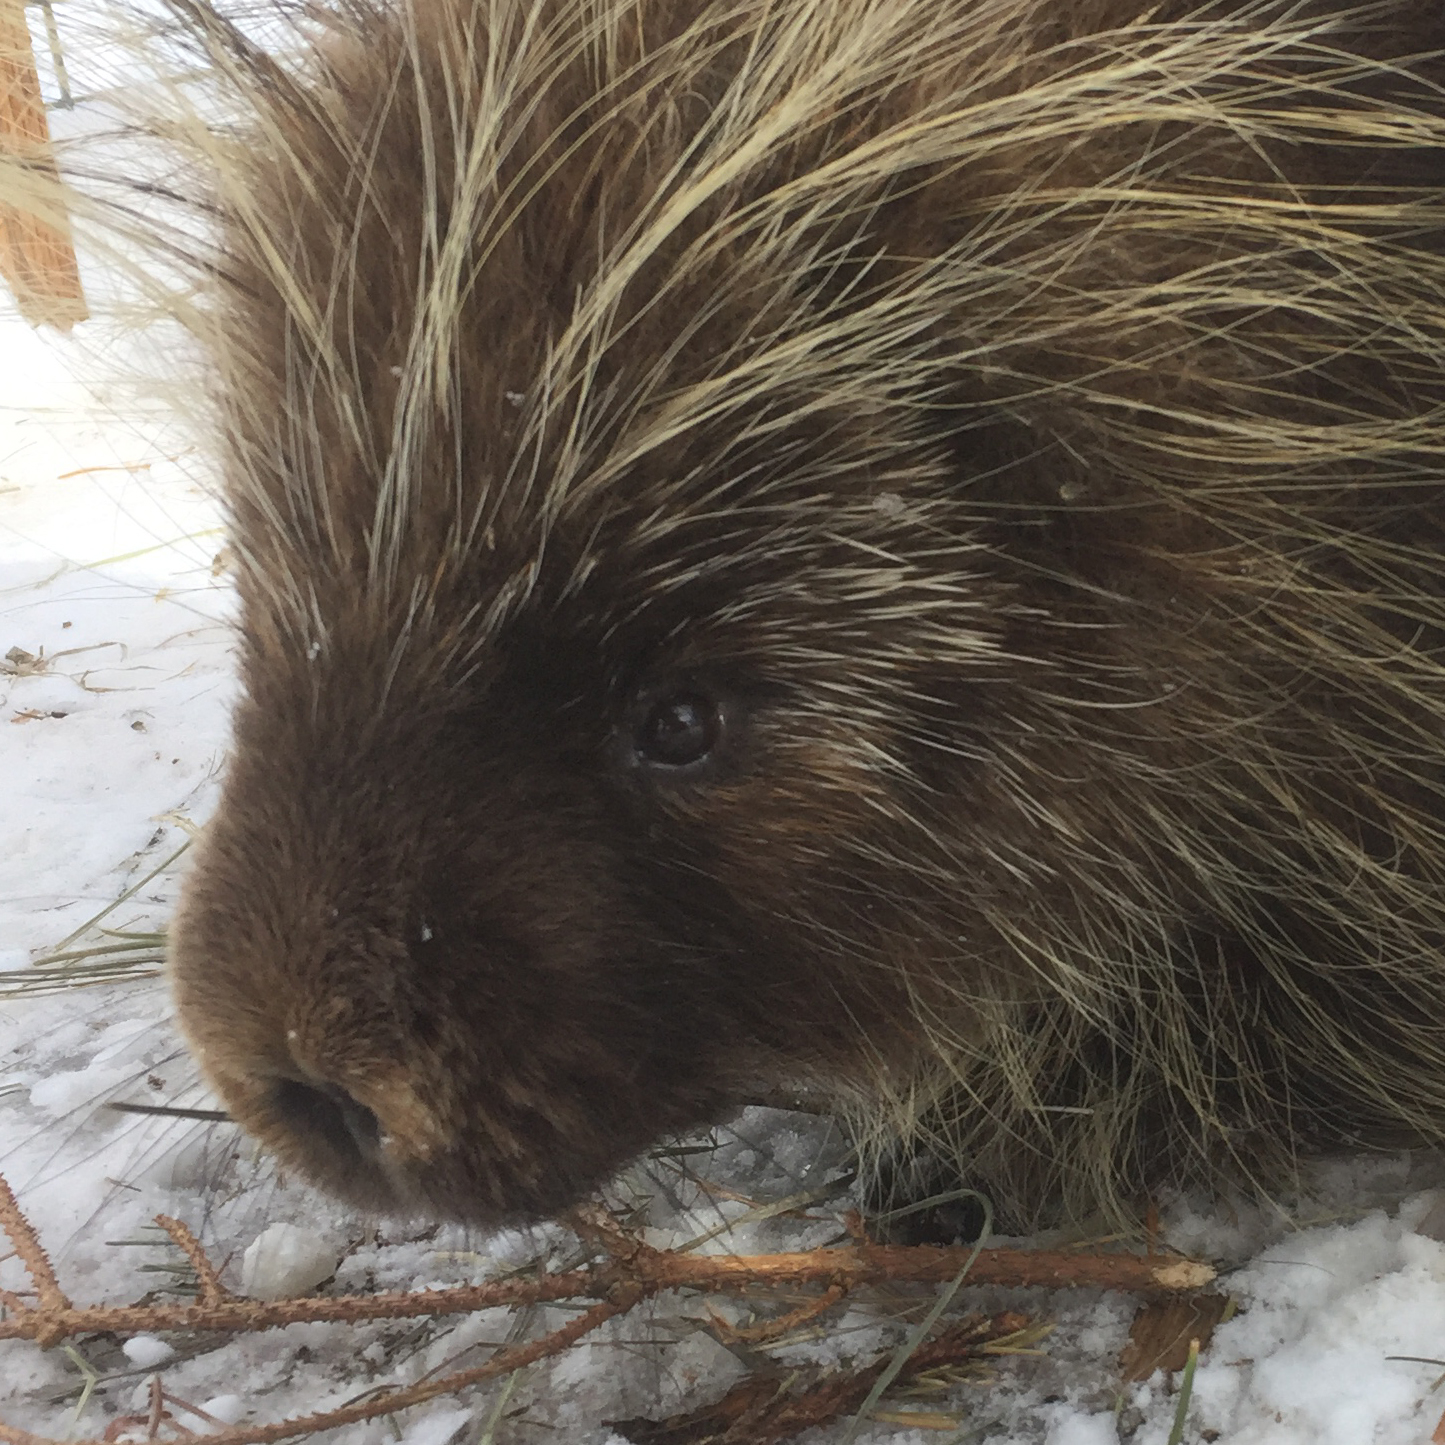 ROCKY , born in 2013, is the older of our two porcupines. He was raised by humans, and became too habituated to people to ever be released into the wild. He is, however, a great ambassador animal, and we use him in many of our educational programs..